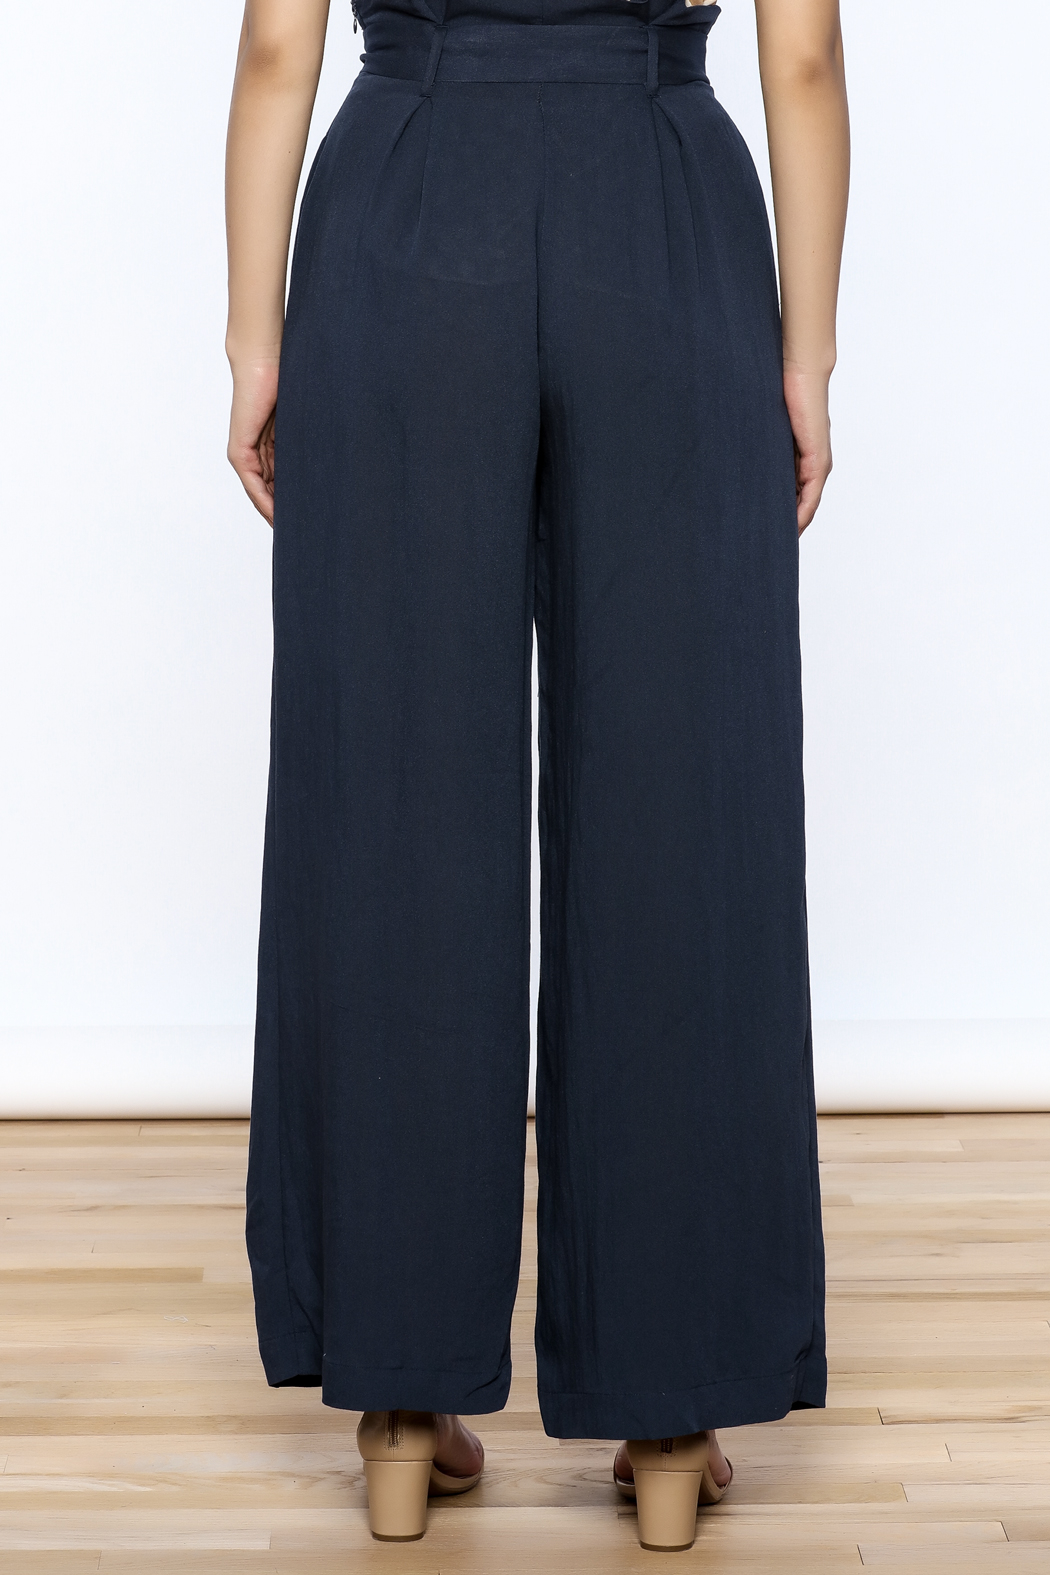 Jealous Tomato Navy High Waist Pants - Back Cropped Image